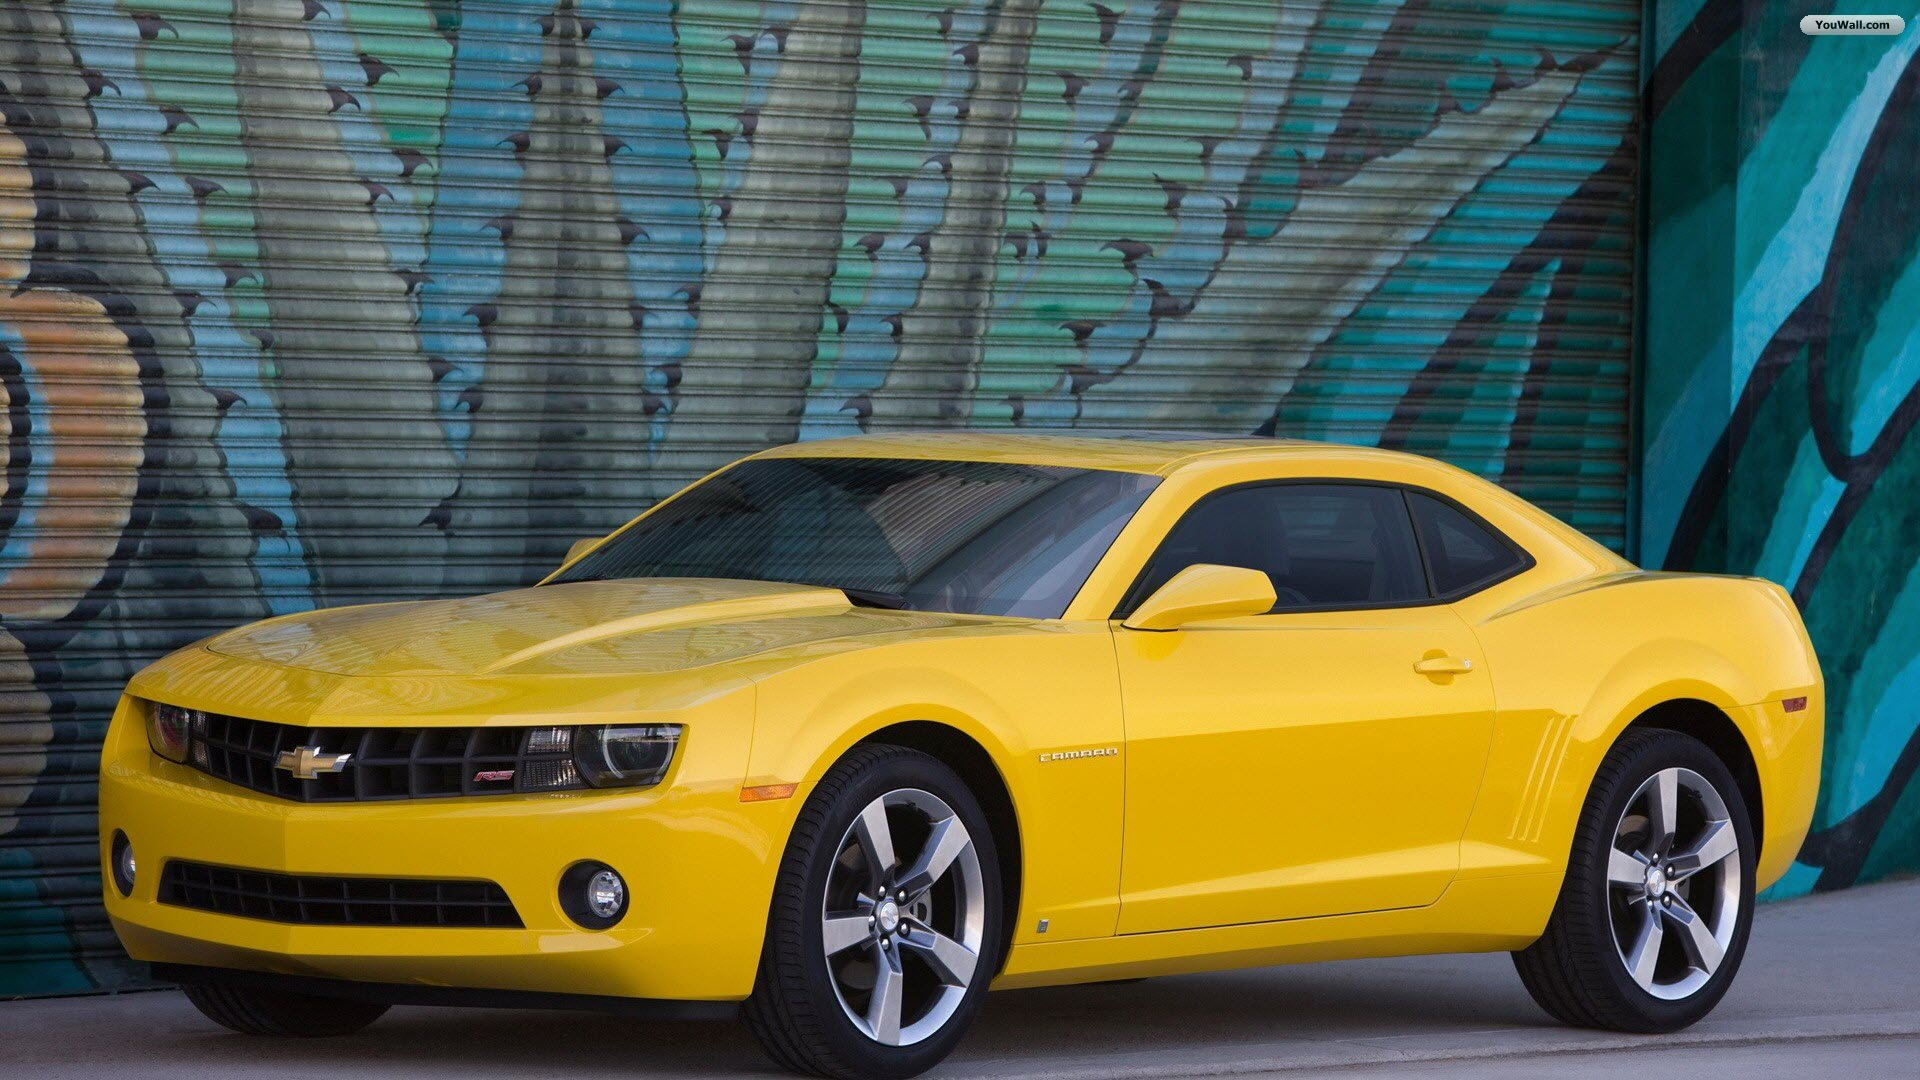 Chevrolet Camaro Wallpaper large HD wallpaper theme 1920x1080